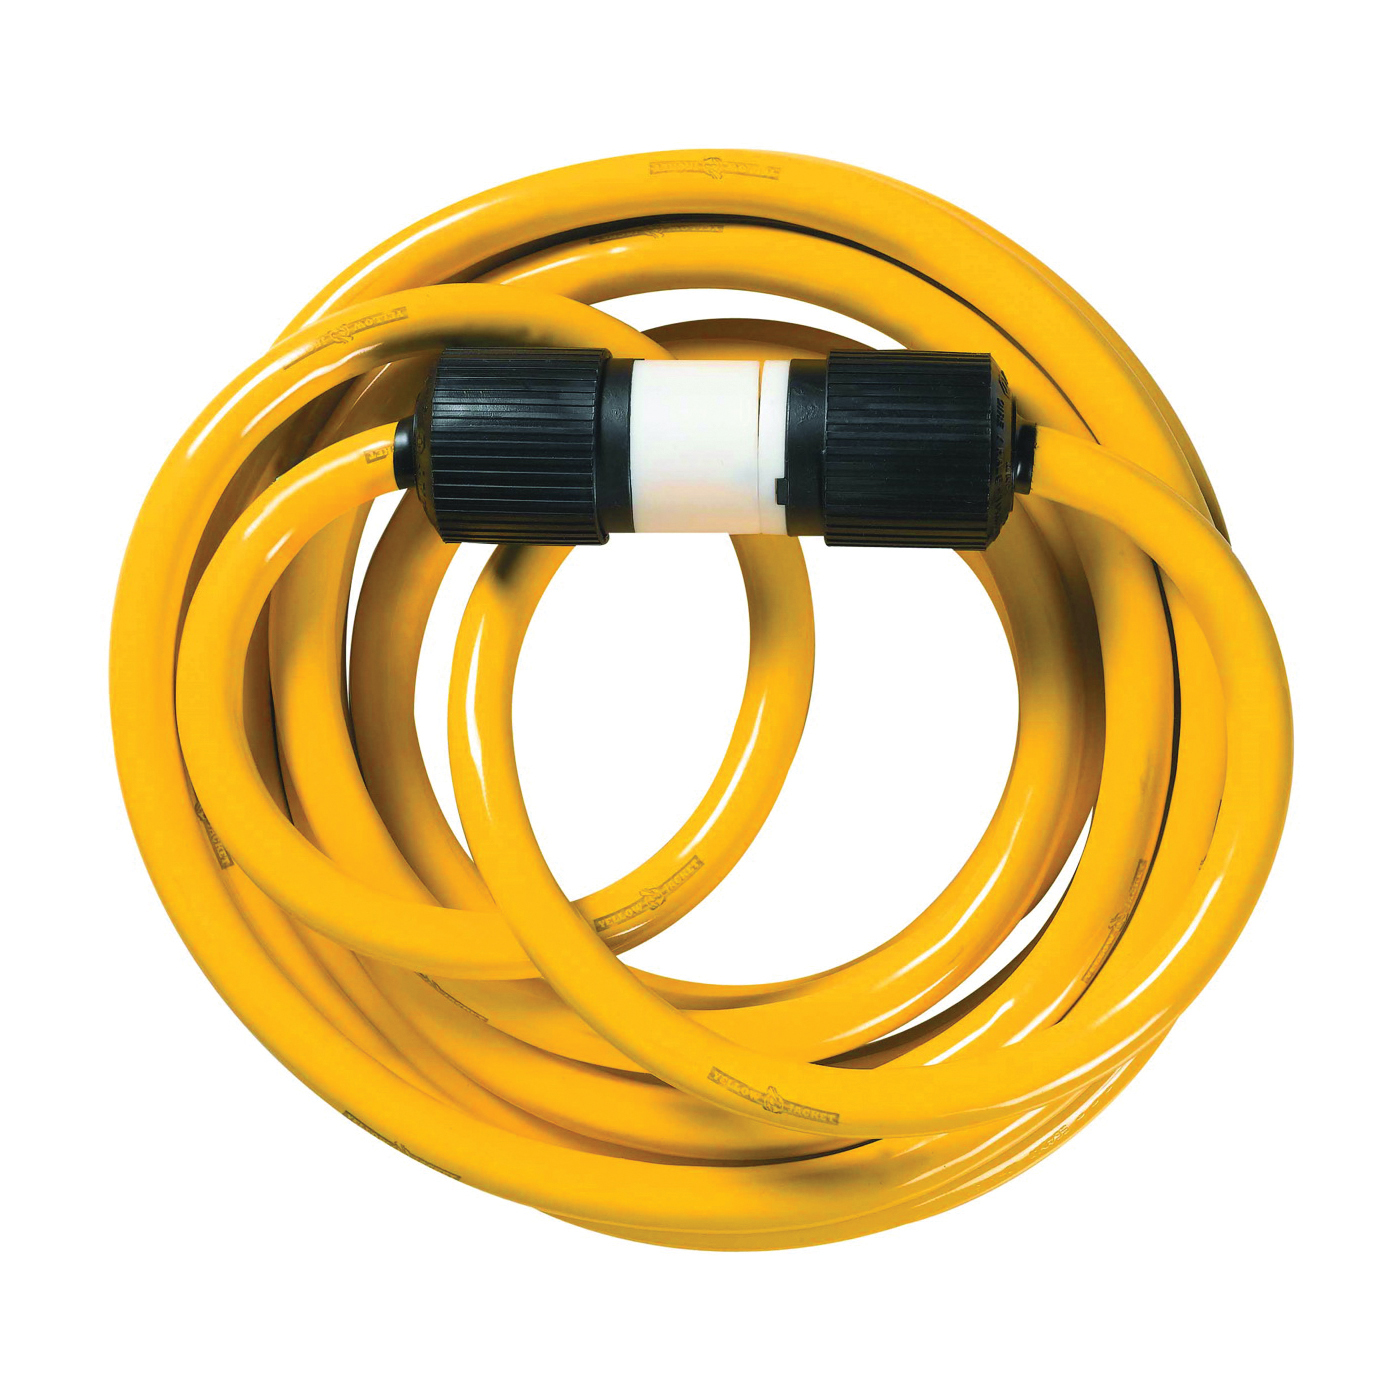 Picture of CCI 1381 Electrical Cord, 10 AWG Cable, 25 ft L, 20 A, 125/250 V, Yellow Jacket